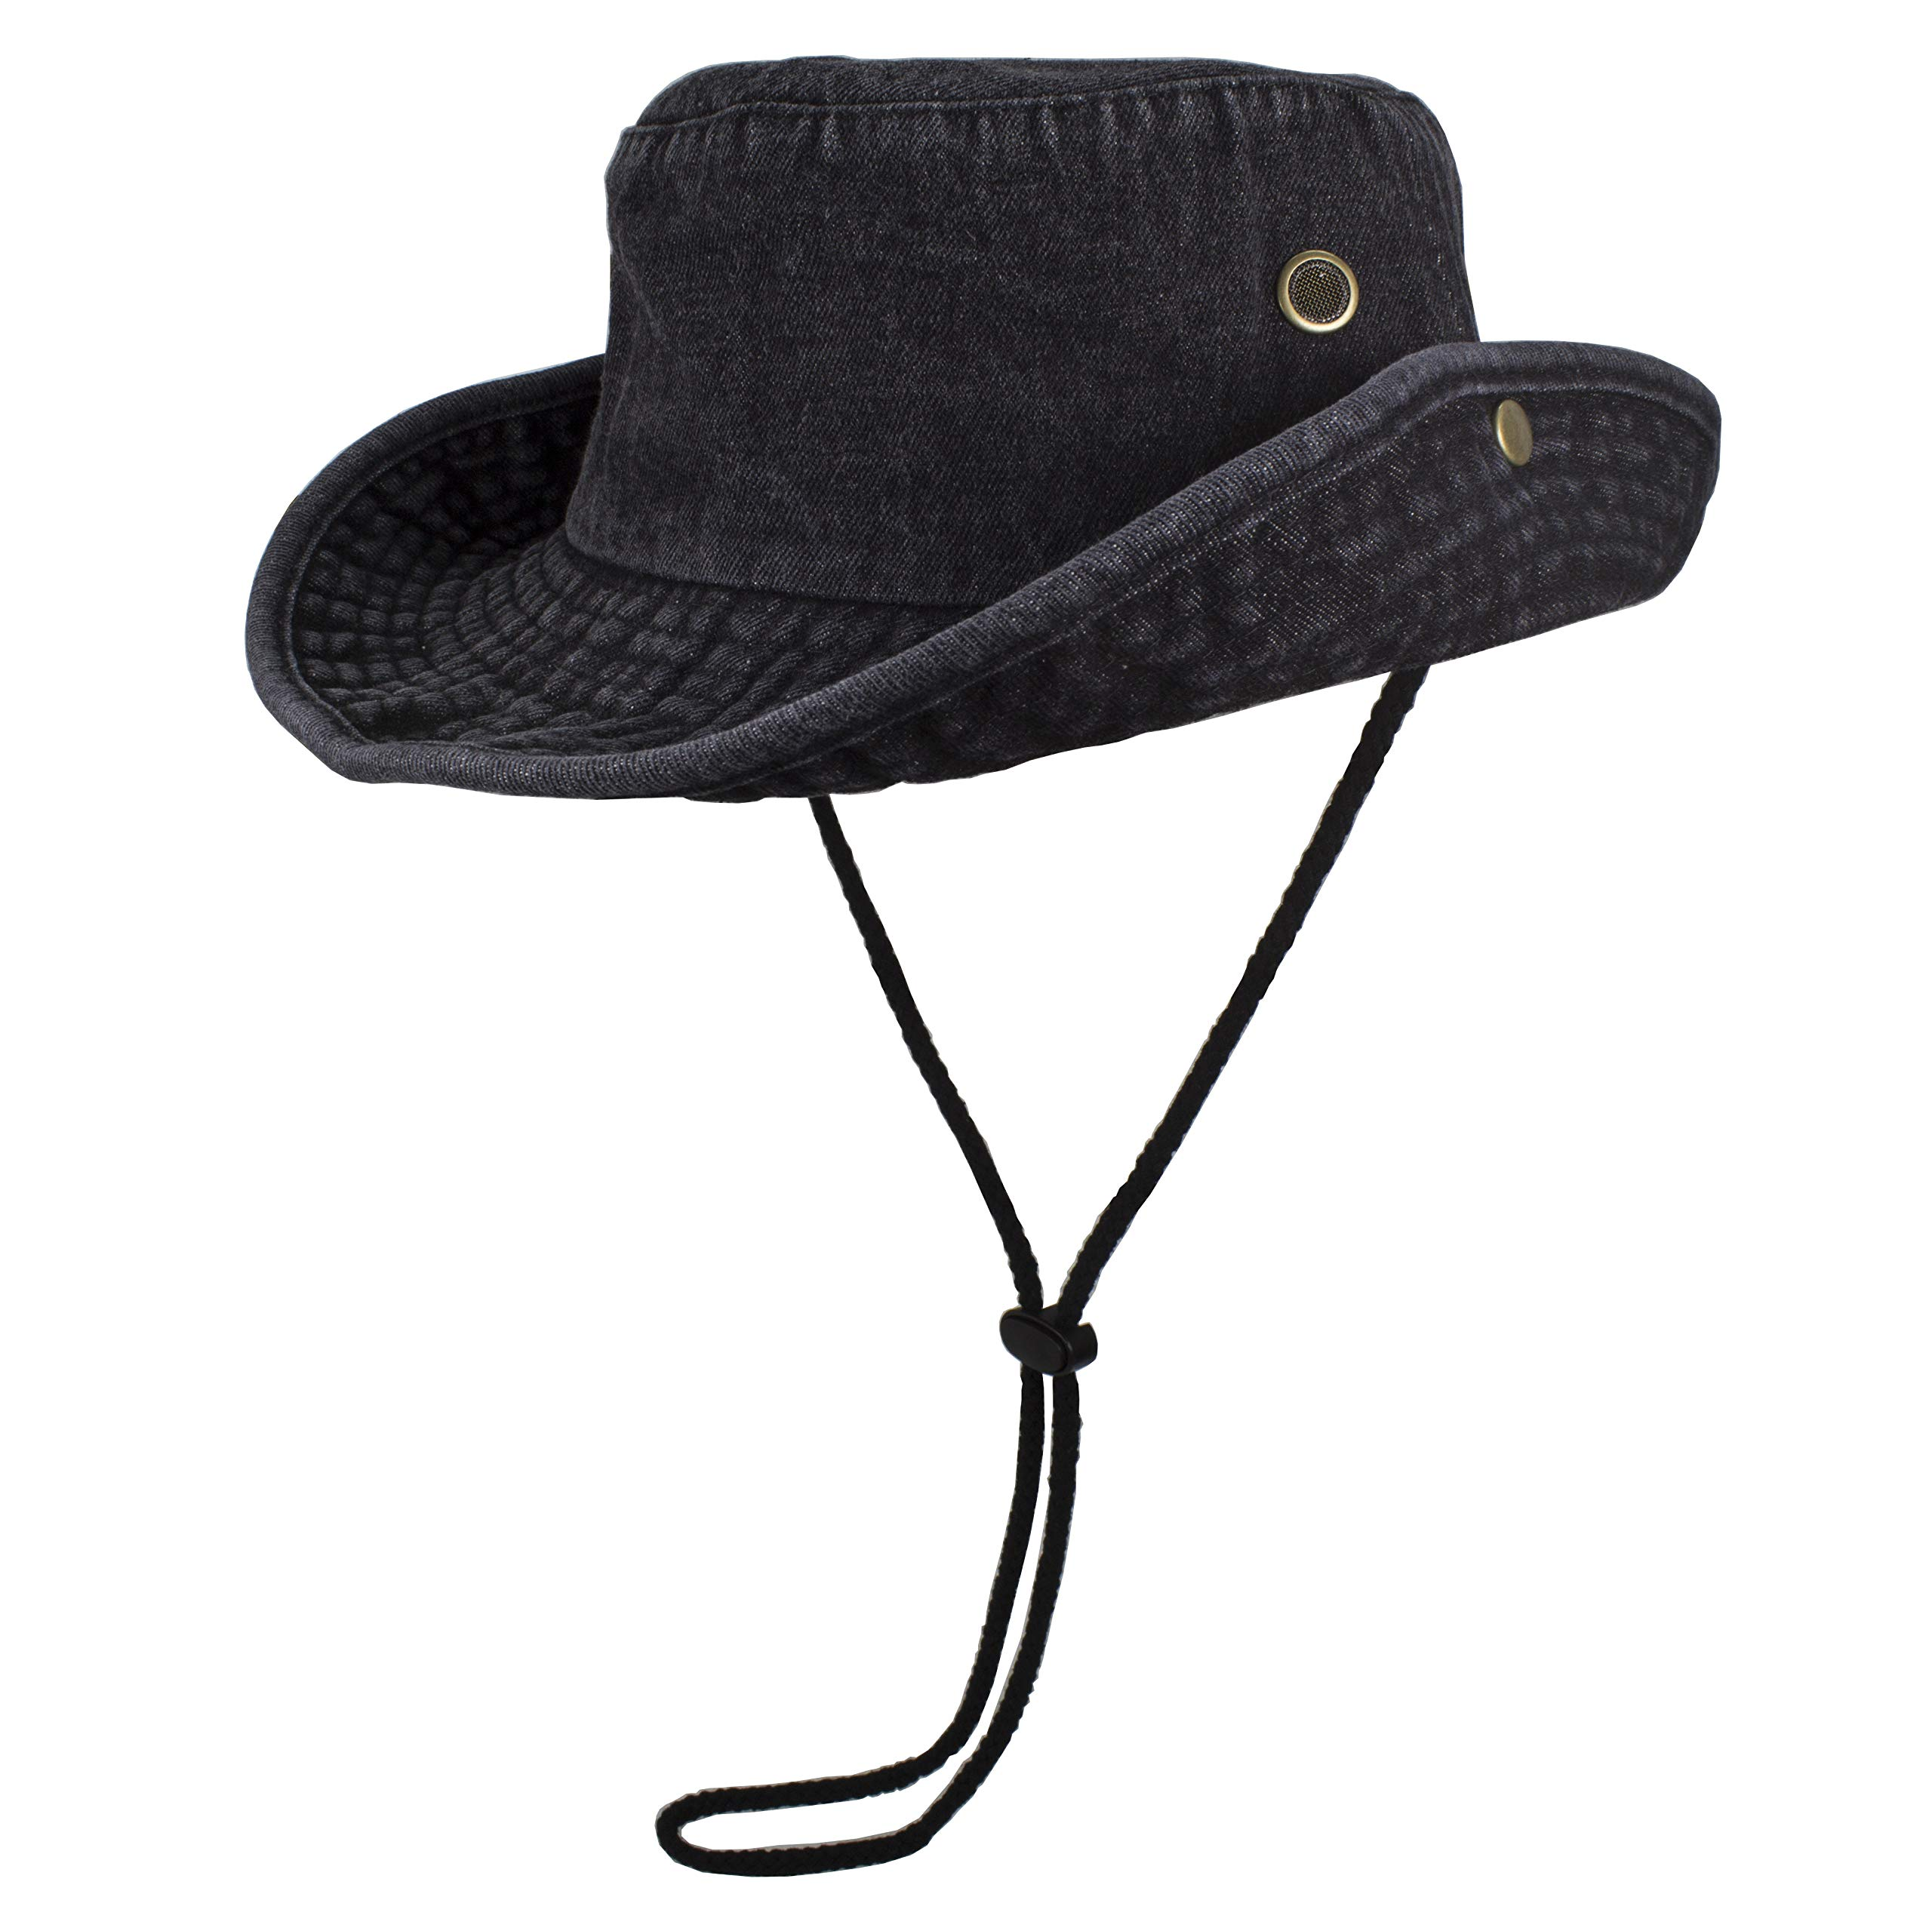 Gelante 100% Cotton Stone-Washed Safari Booney Sun Hats 1910-DenimBlack-S/M